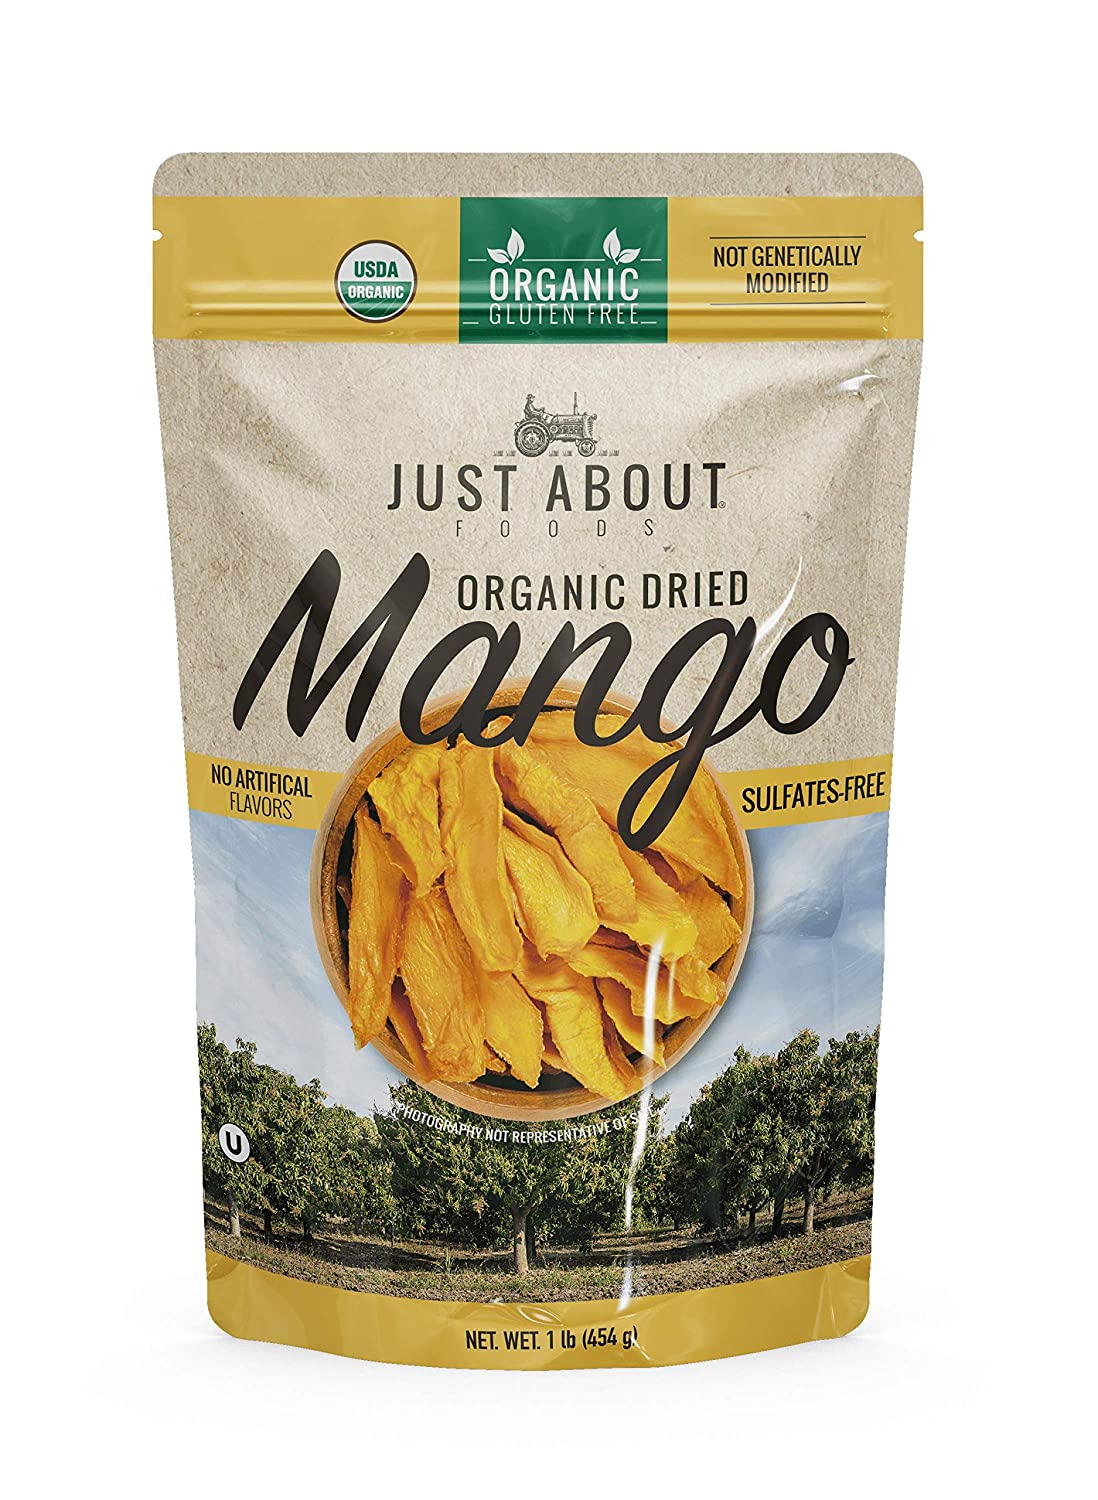 Just About Foods Organic Dried Mango 1 Pound No Artifical Flavor Sulfates Free Kosher, Gluten Free 1 Pack